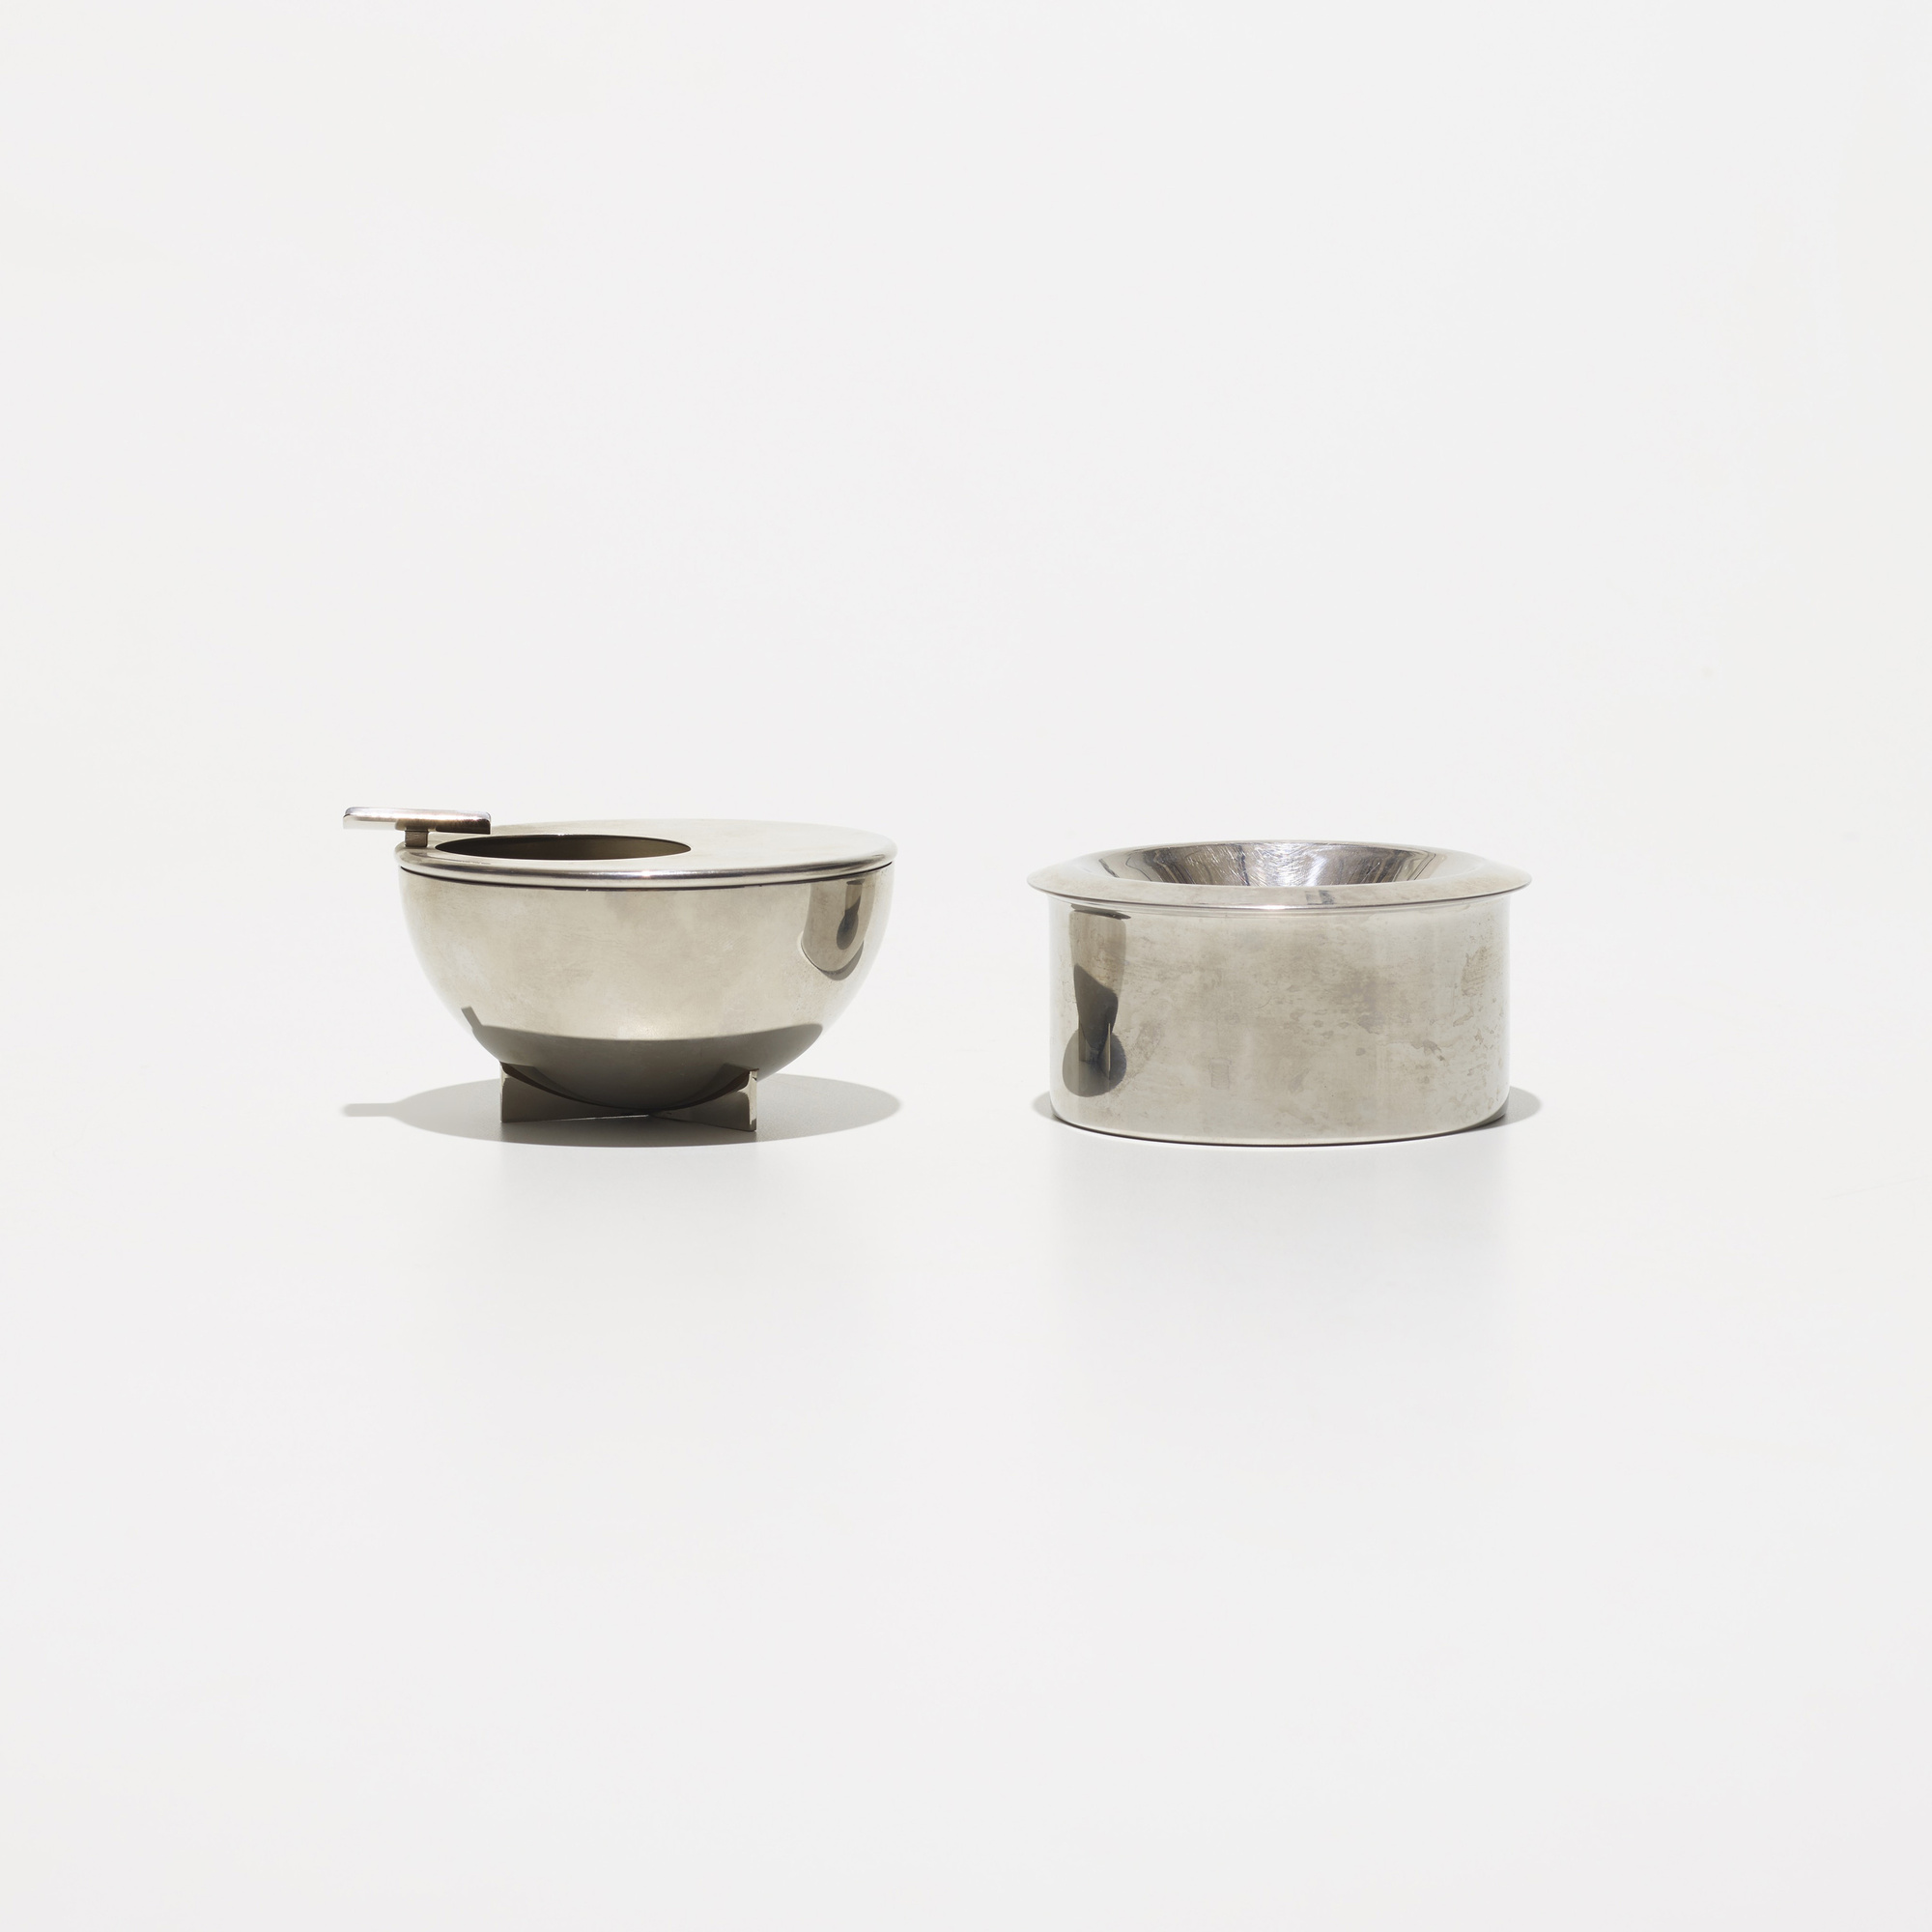 448: Marianne Brandt / ashtrays, set of two (2 of 3)